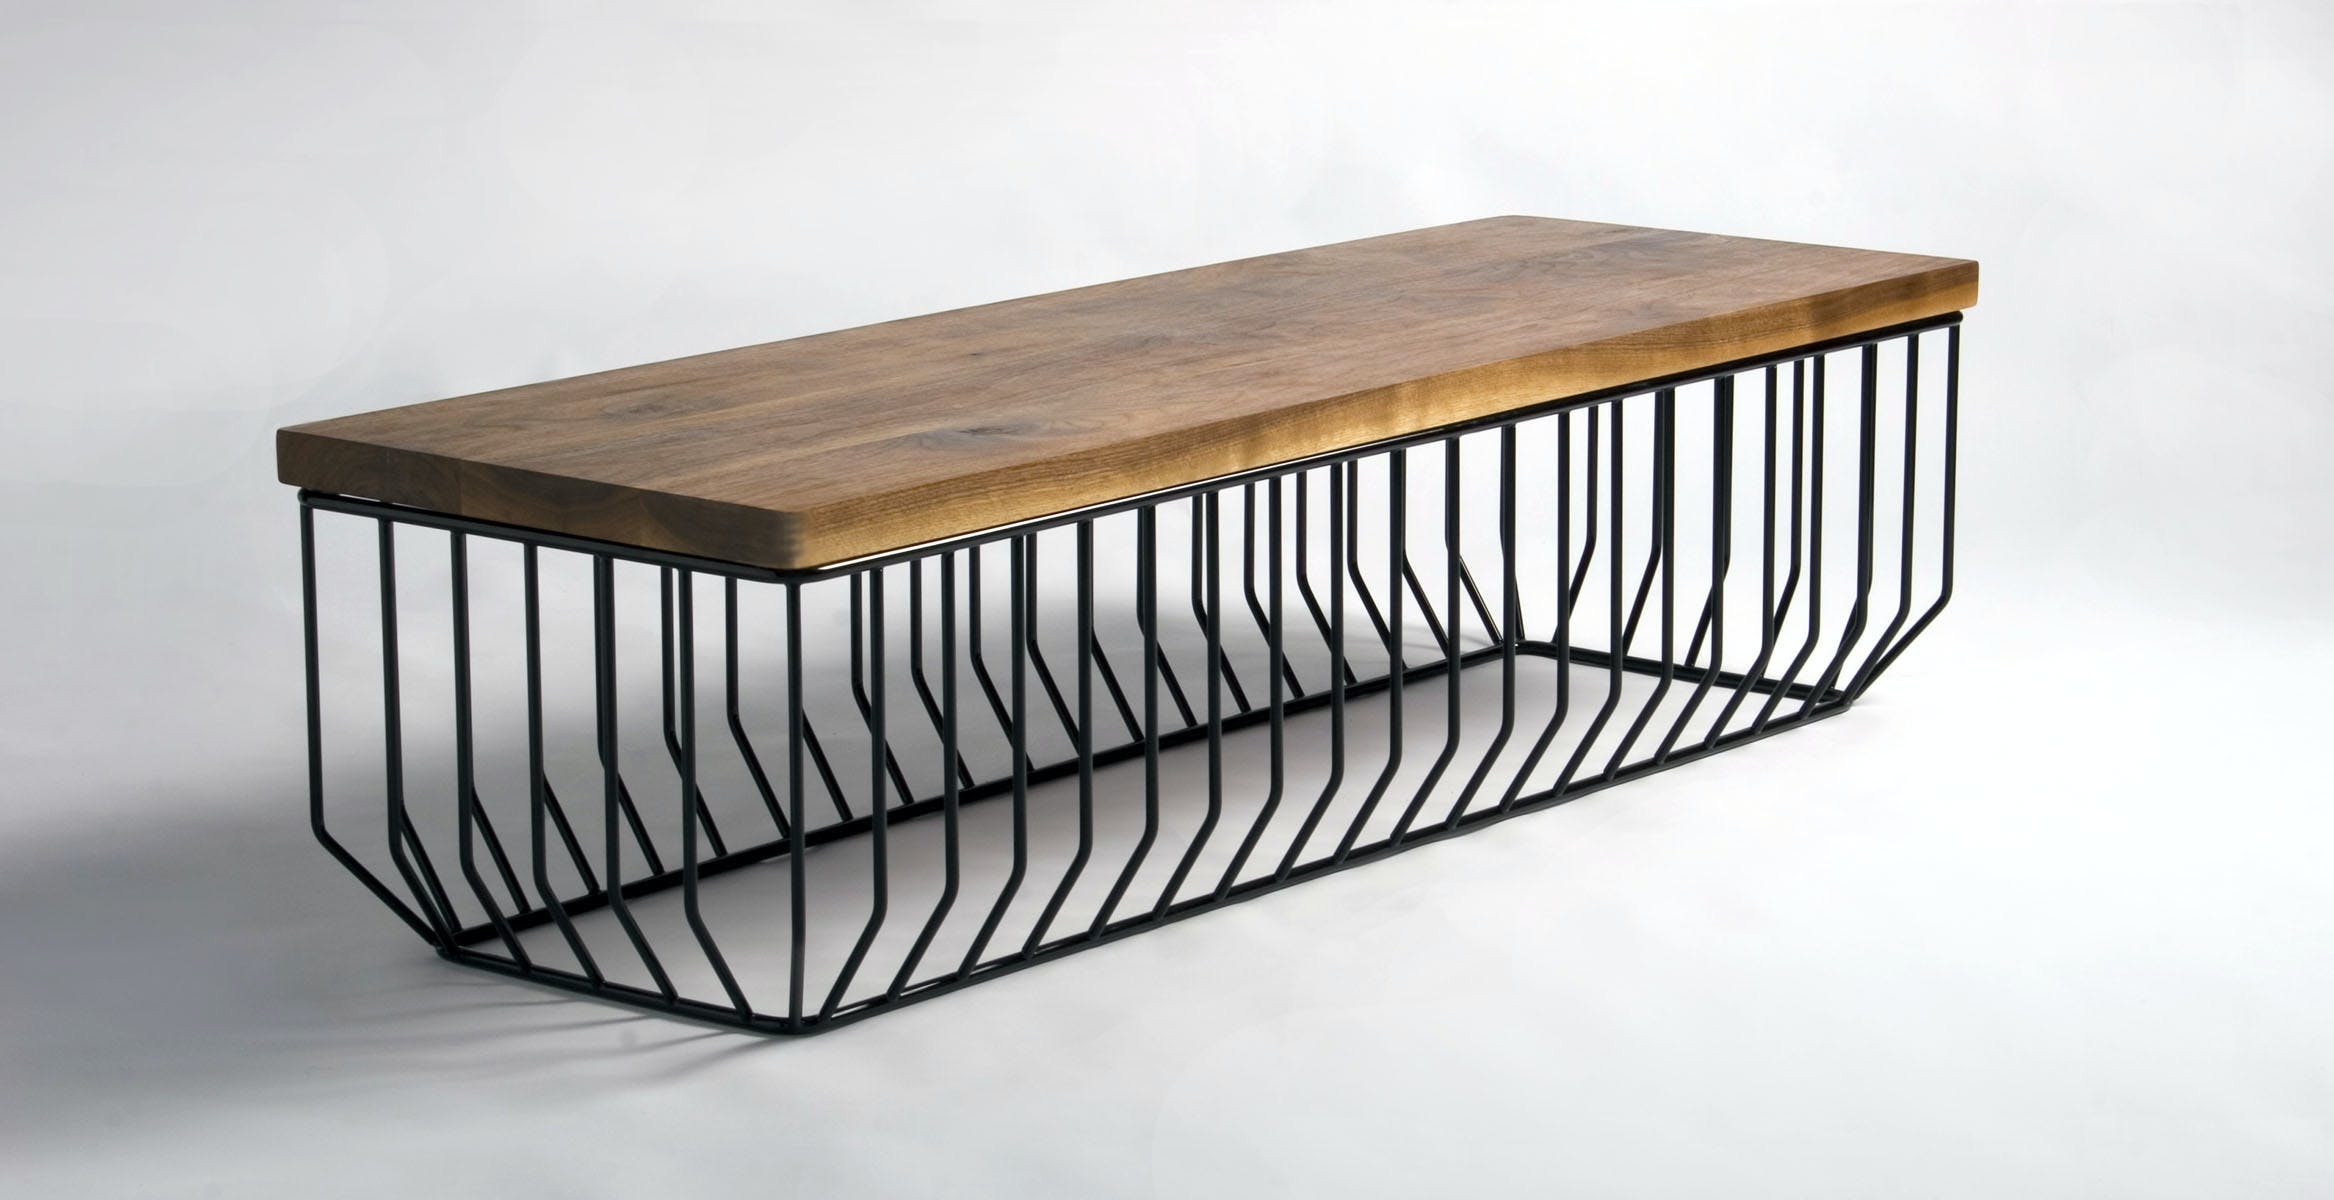 Wired Bench by Phase Design